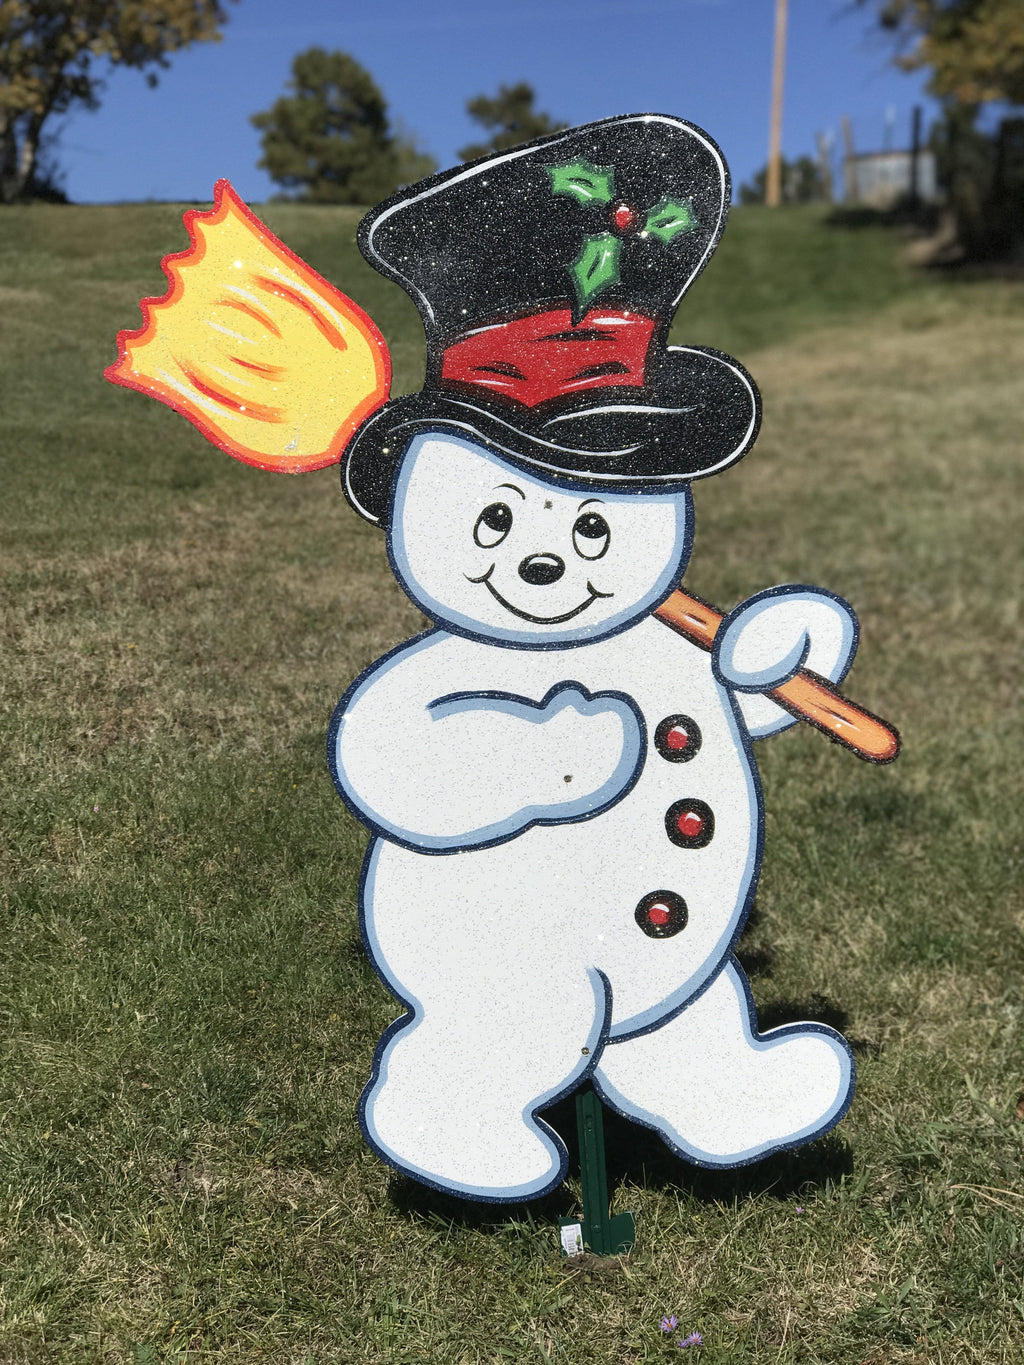 frosty the snowman holding broom painted yard art design